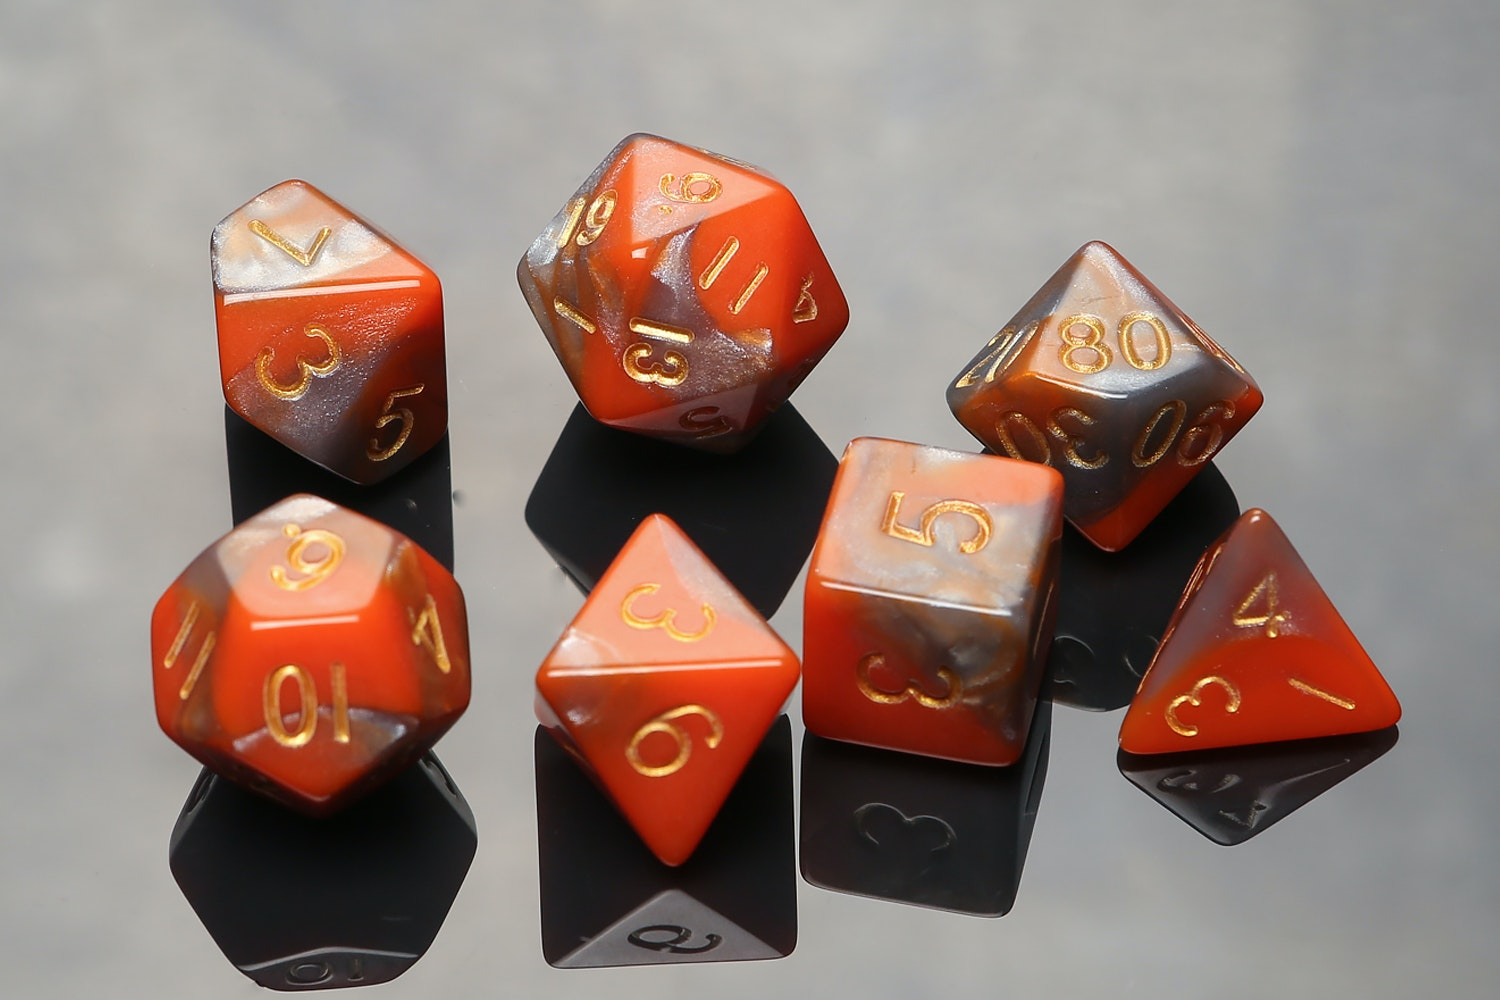 Combo Attack Orange/Brown with Gold Numbers